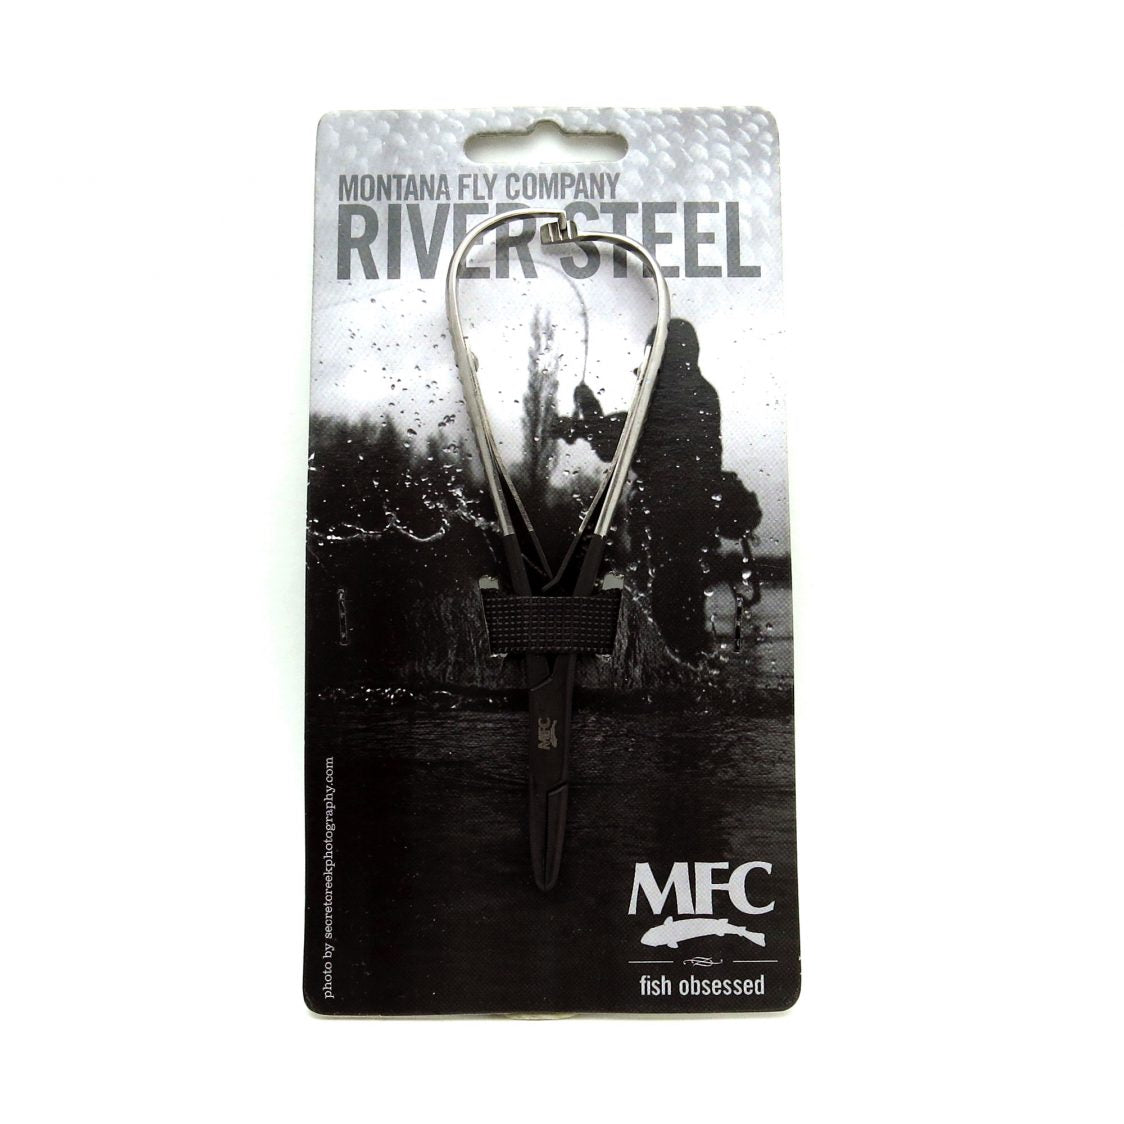 MFC River Steel - 5-1/2″ Mitten Clamp Forceps (Black/Silver)